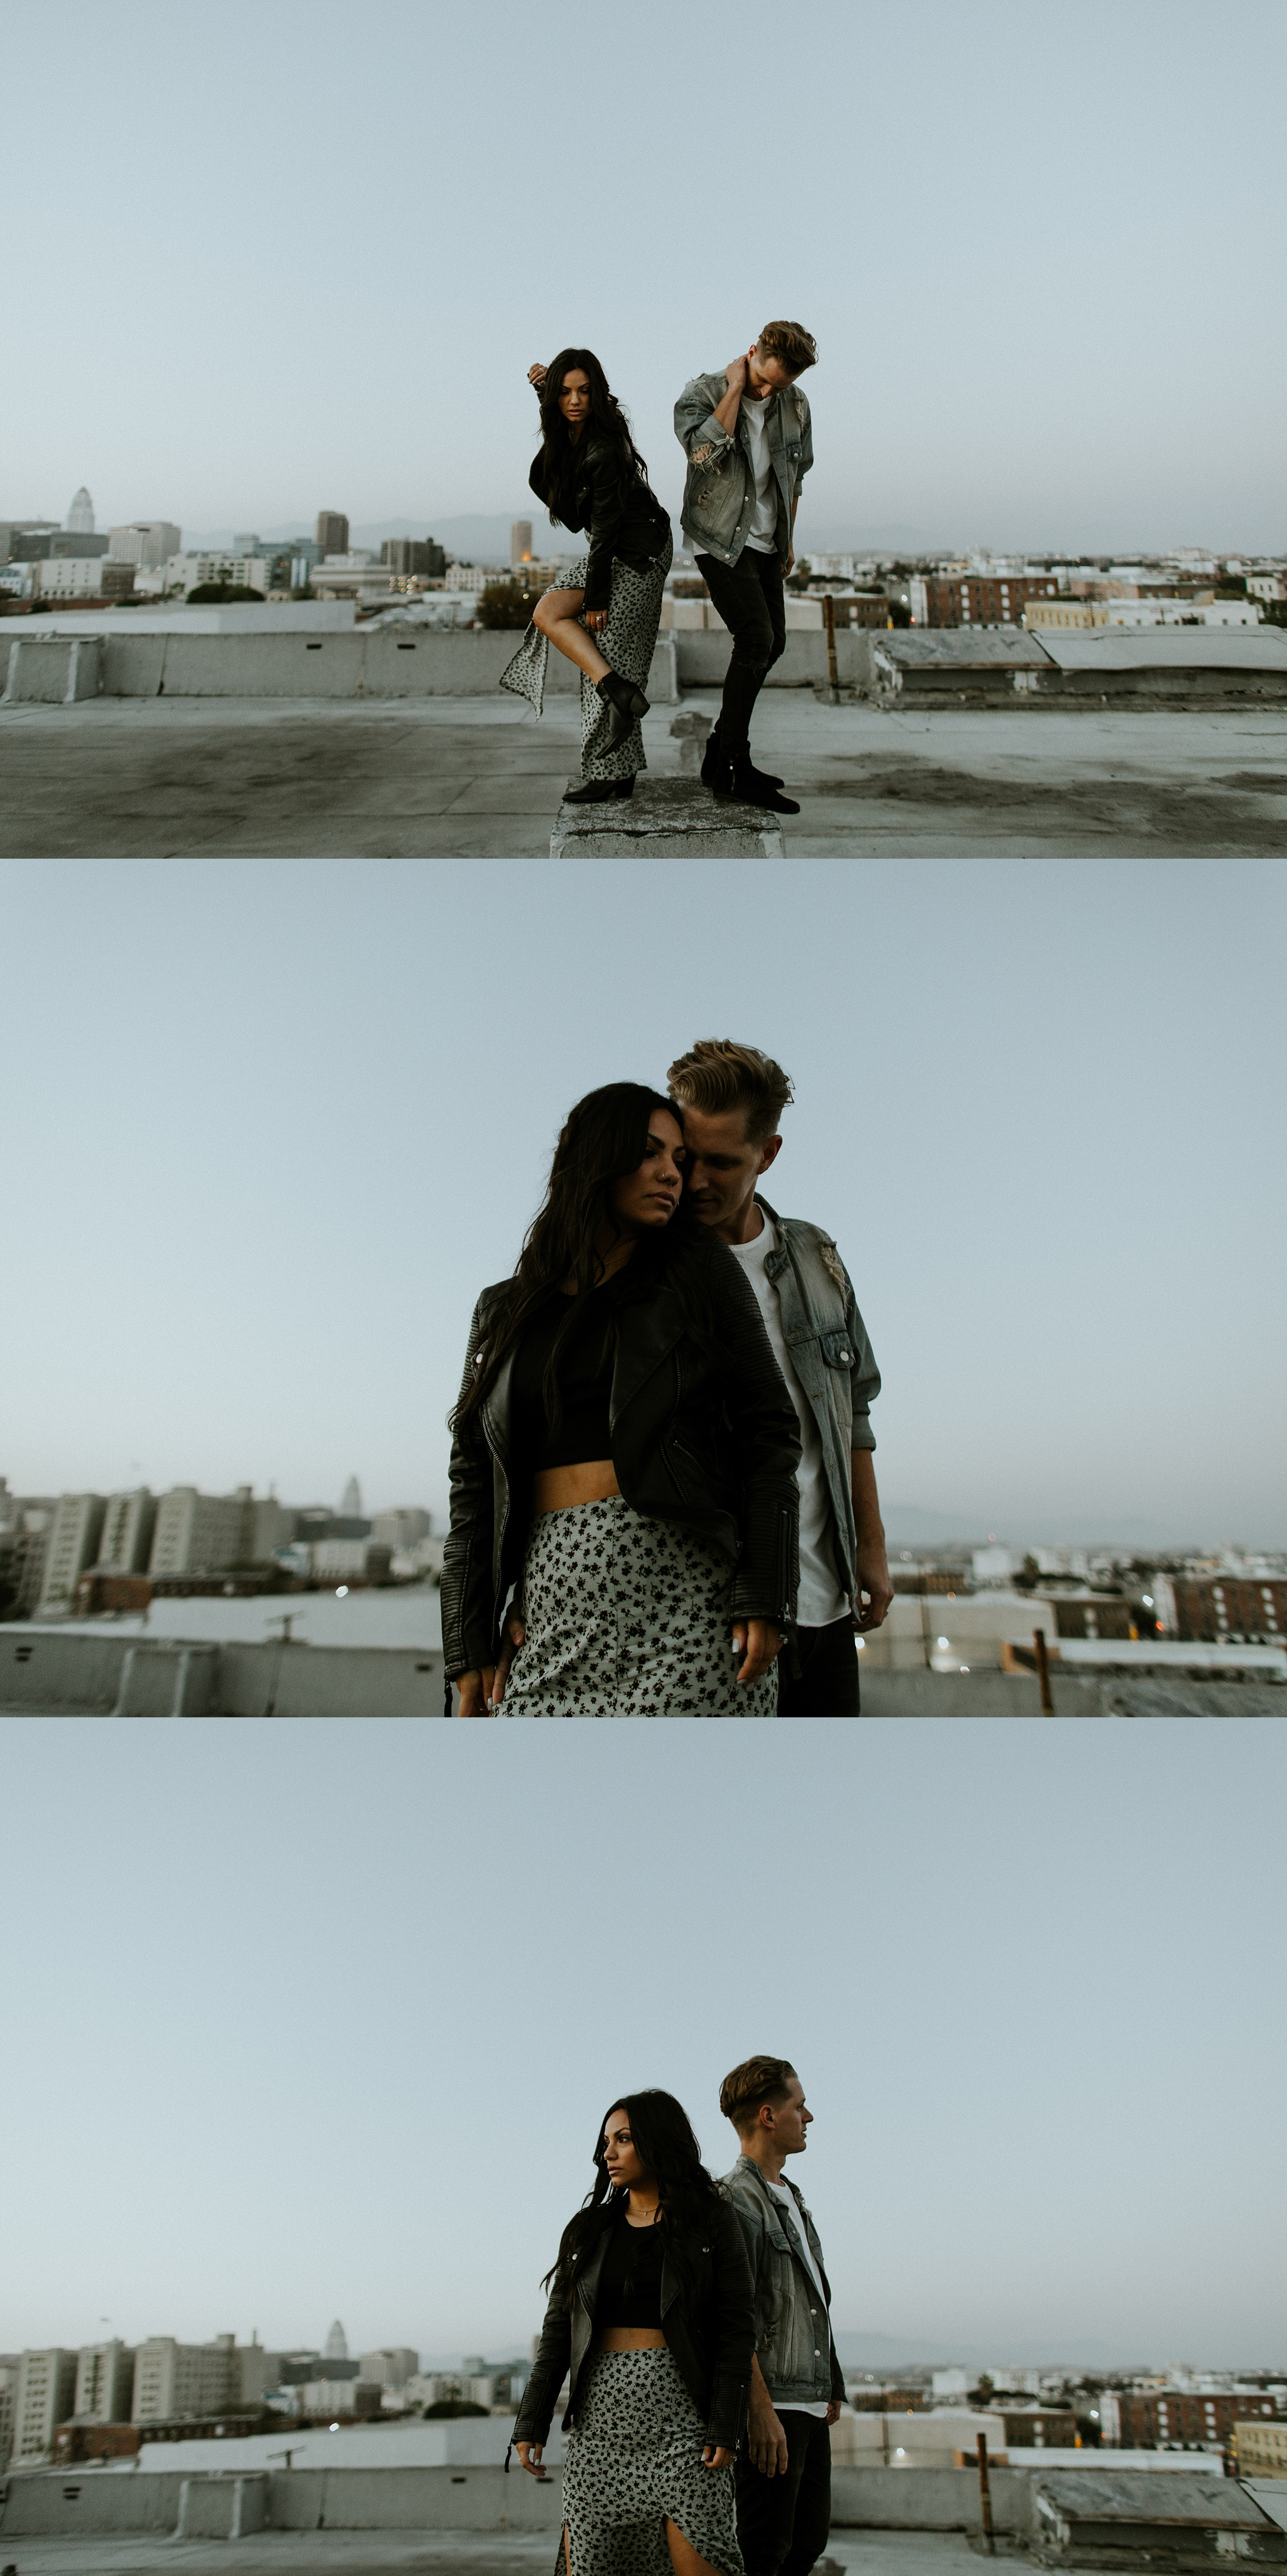 DTLA Rooftop Engagement Session by Trin Jensen Photography  - Los Angeles Wedding Photographer_0043.jpg